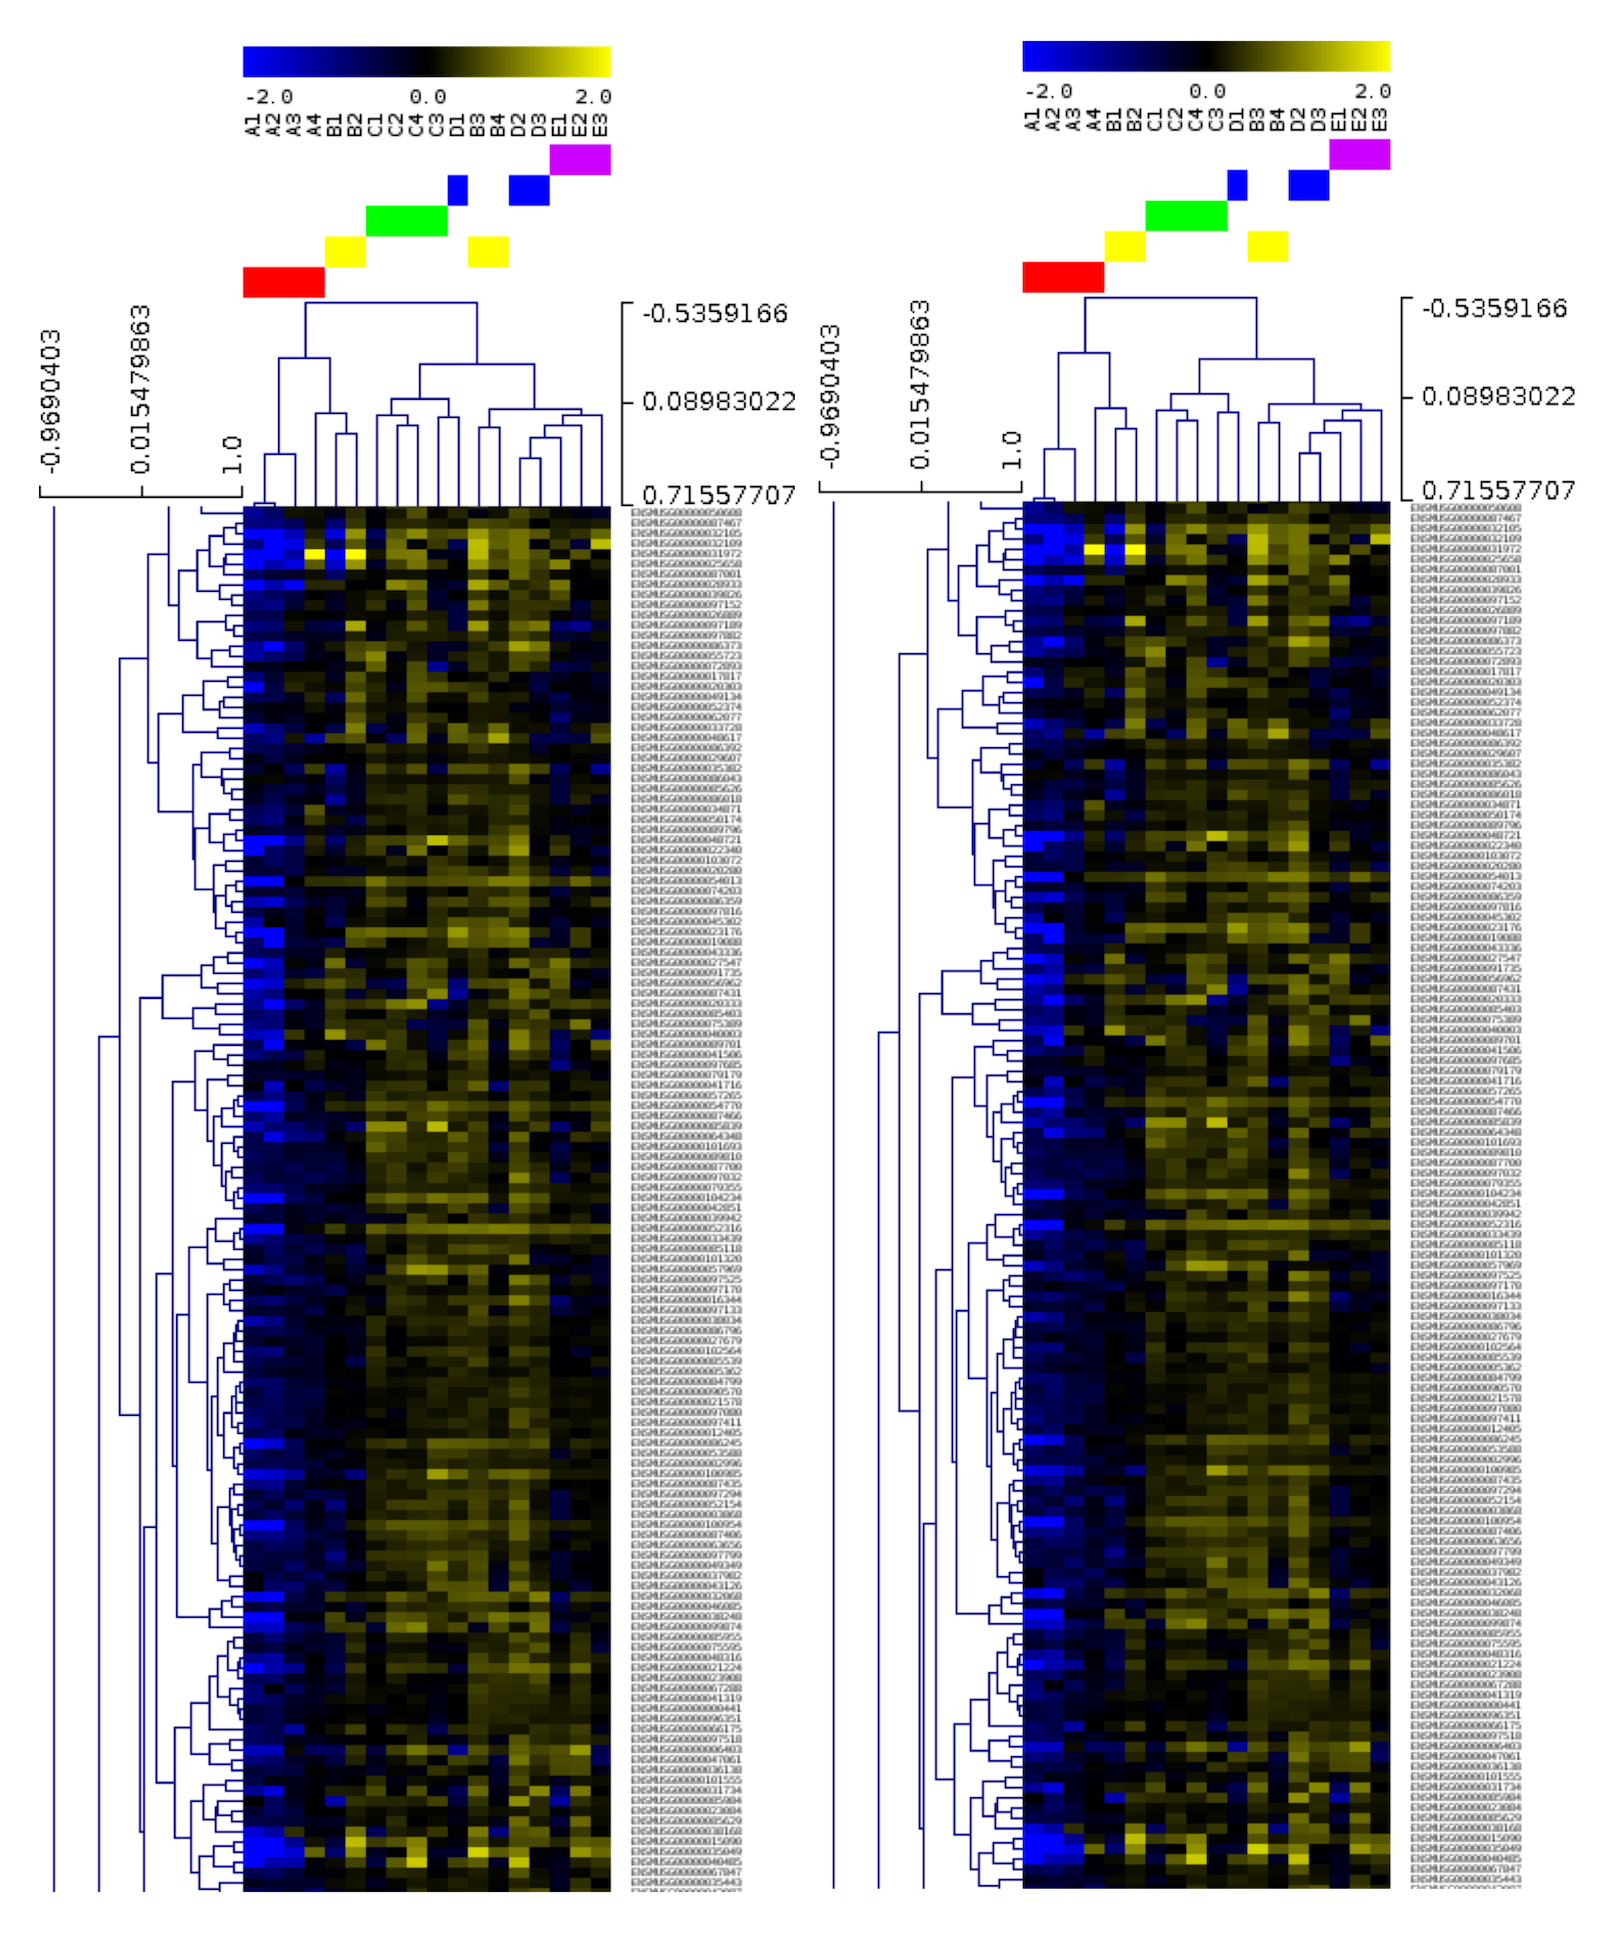 Heatmap generated from transcriptomic data from heart samples (Nathalia Tan)